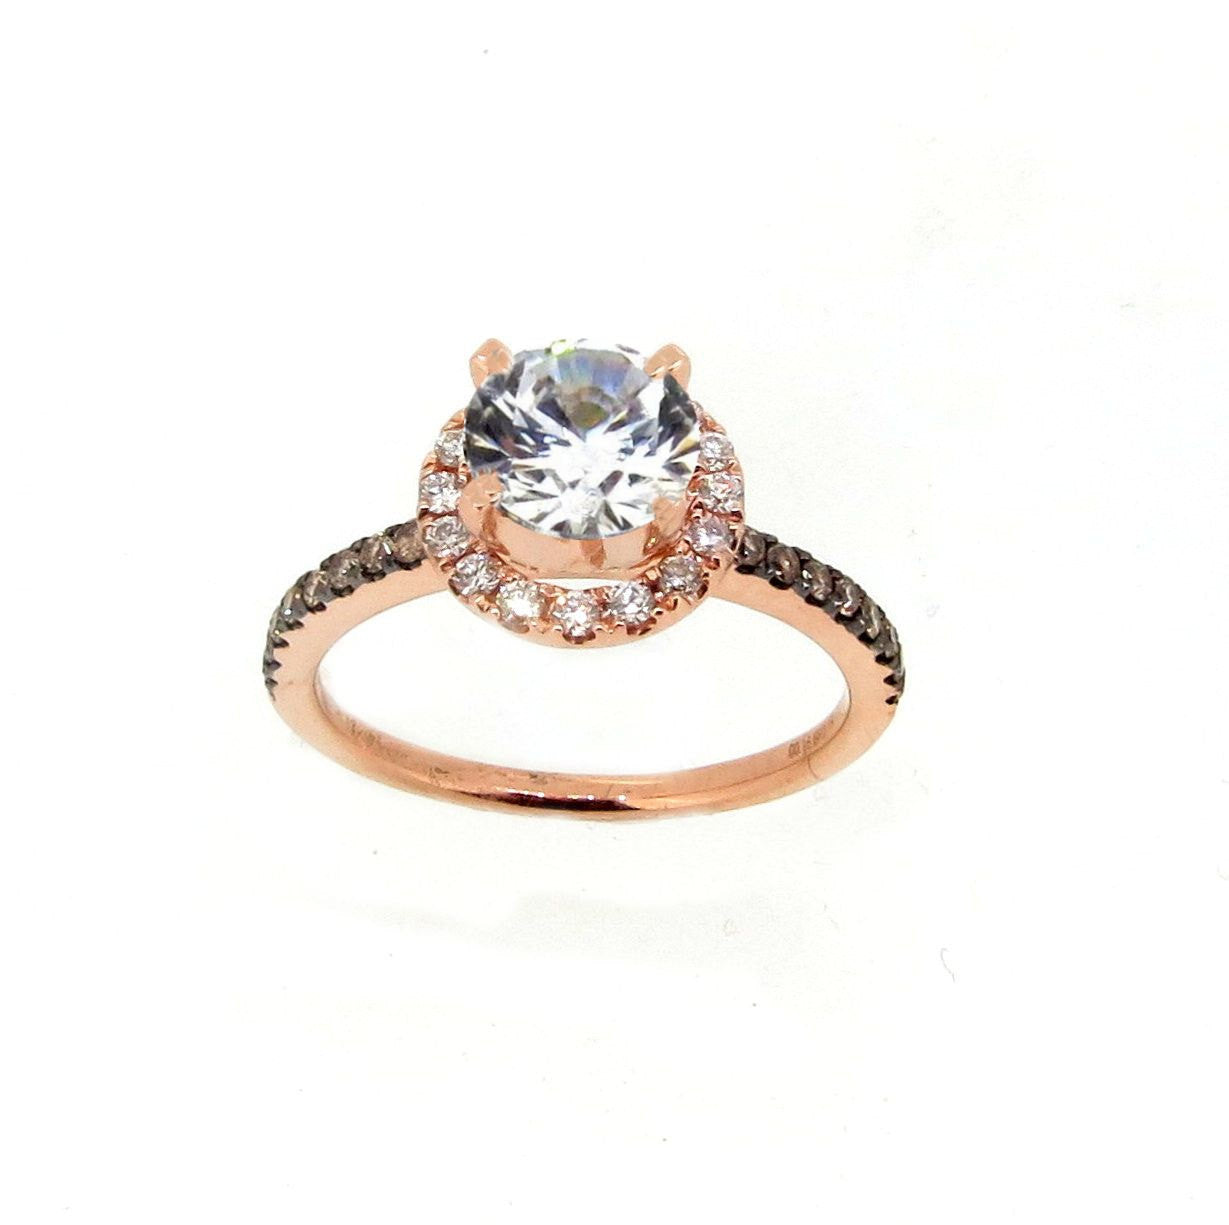 1 Carat Forever Brilliant Moissanite & .32 Carat Diamonds Halo, Chocolate Brown Diamond Accent Stones, Rose Gold, Unique Engagement Ring - FB94639A